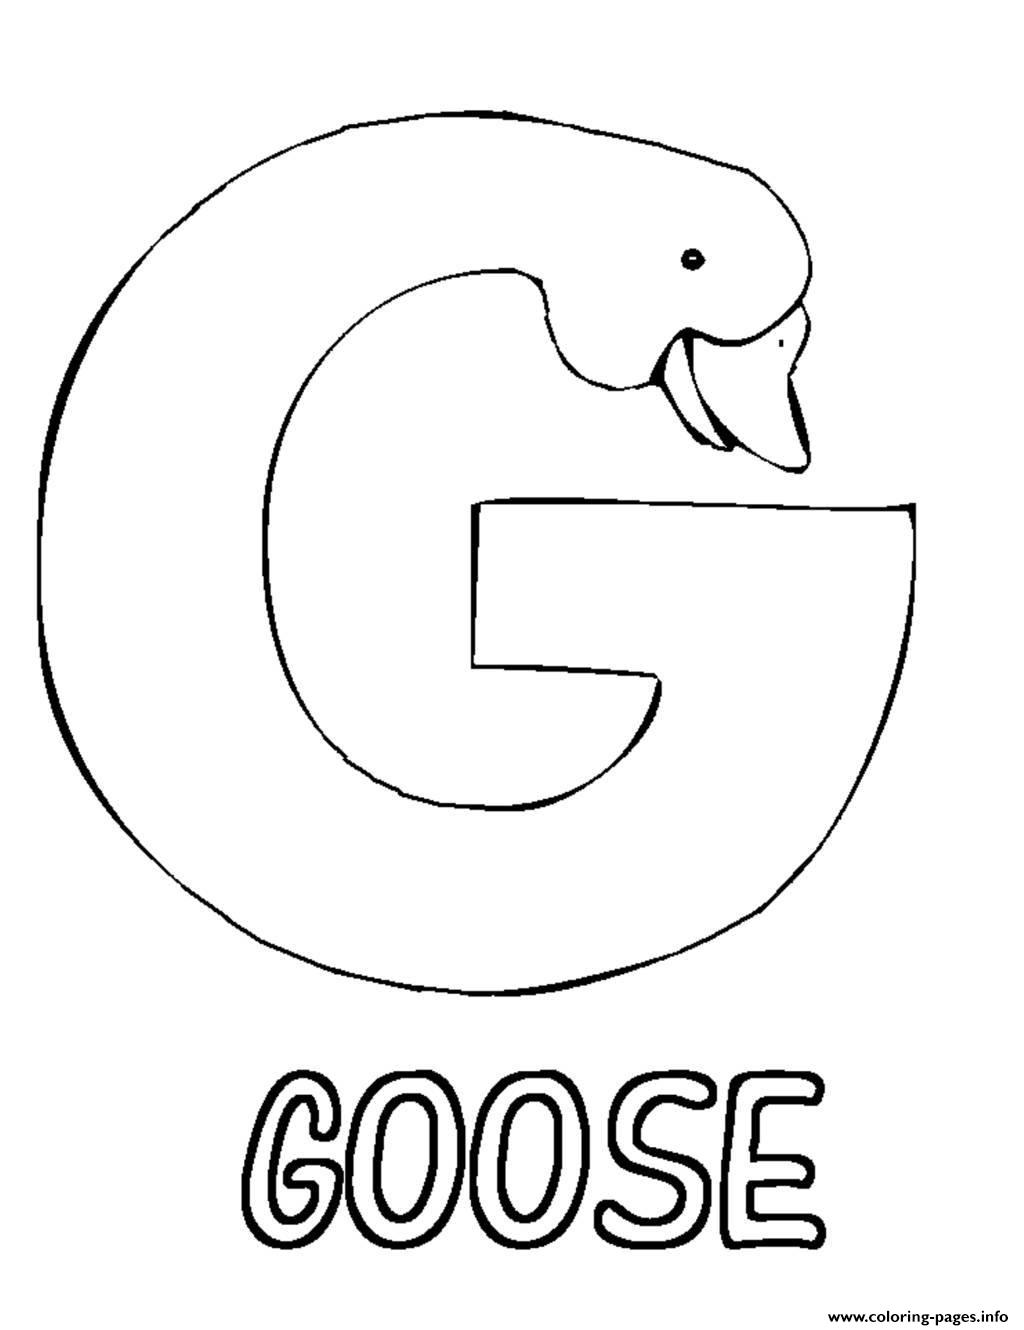 coloring alphabet g 27 awesome image of letter g coloring pages alphabet coloring g